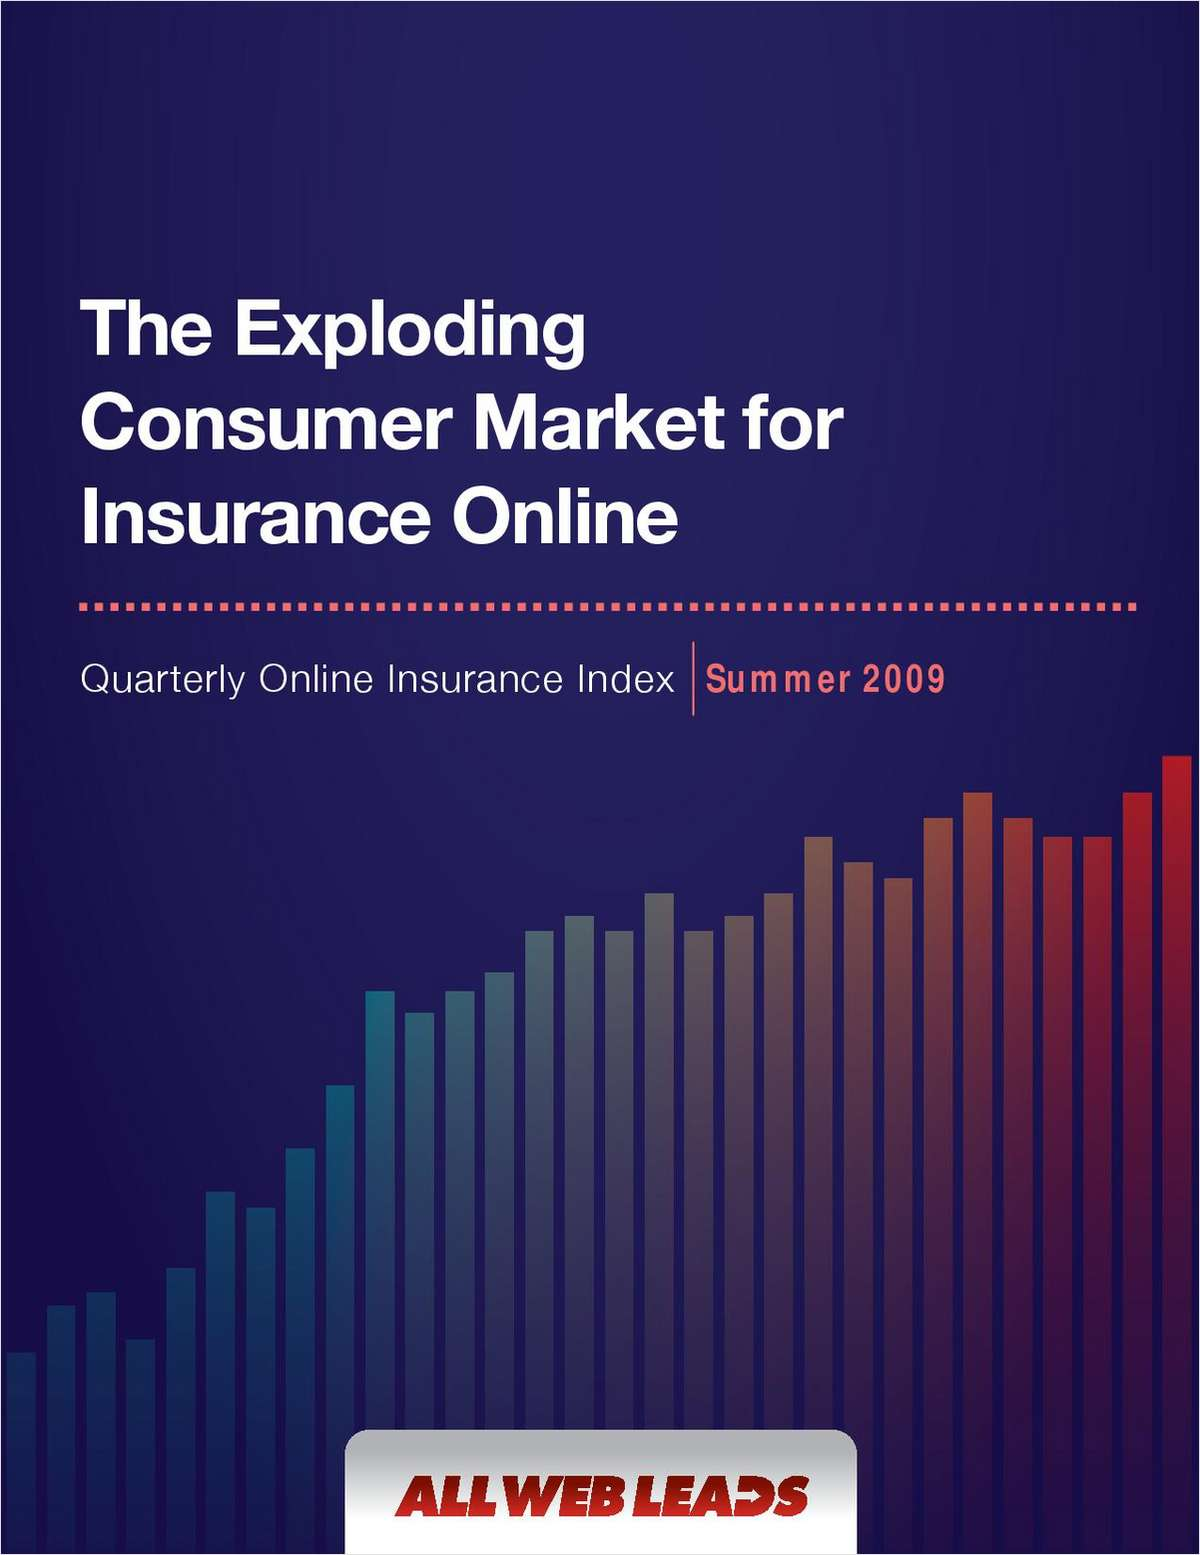 The Exploding Consumer Market for Insurance Online